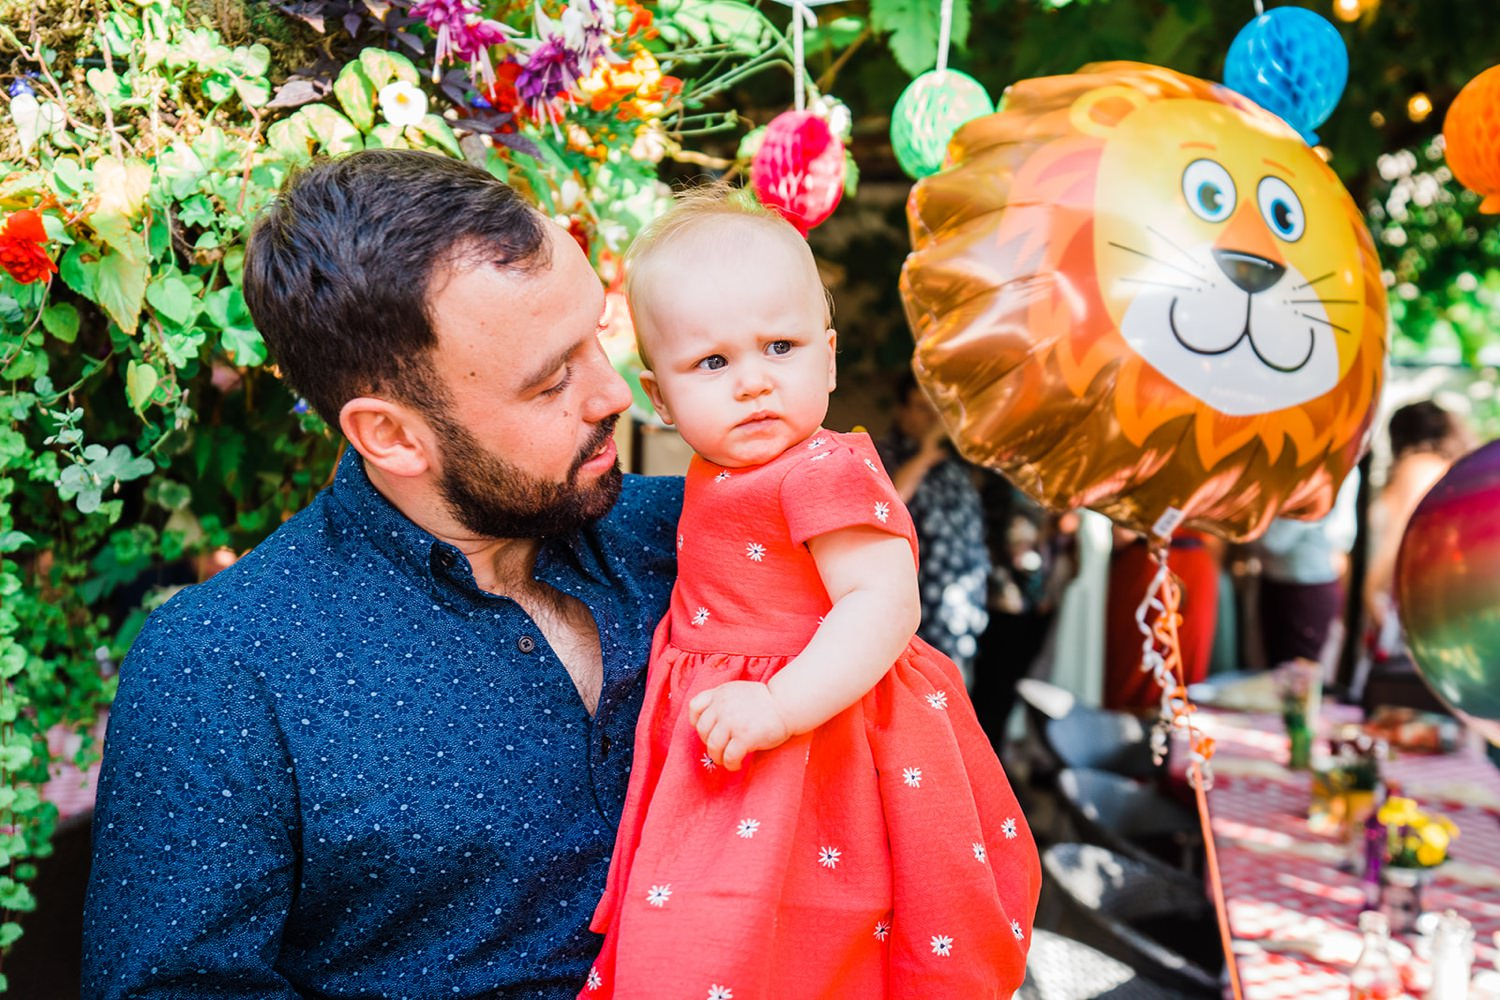 Baby looking at lion balloon small wedding